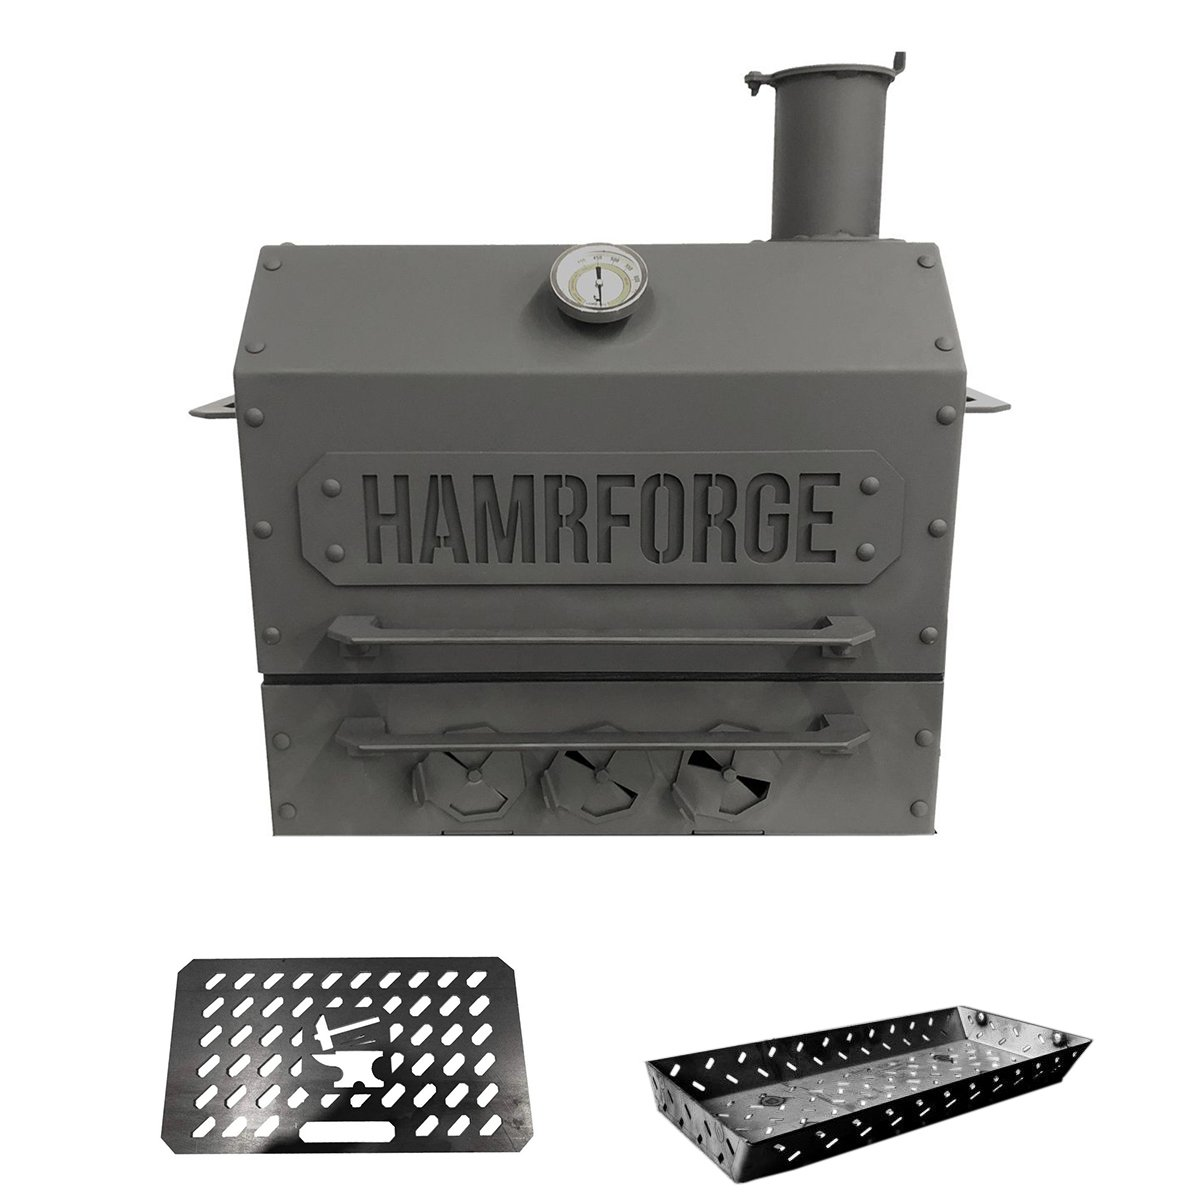 Hamrforge Old Iron Sides Grill Bundle